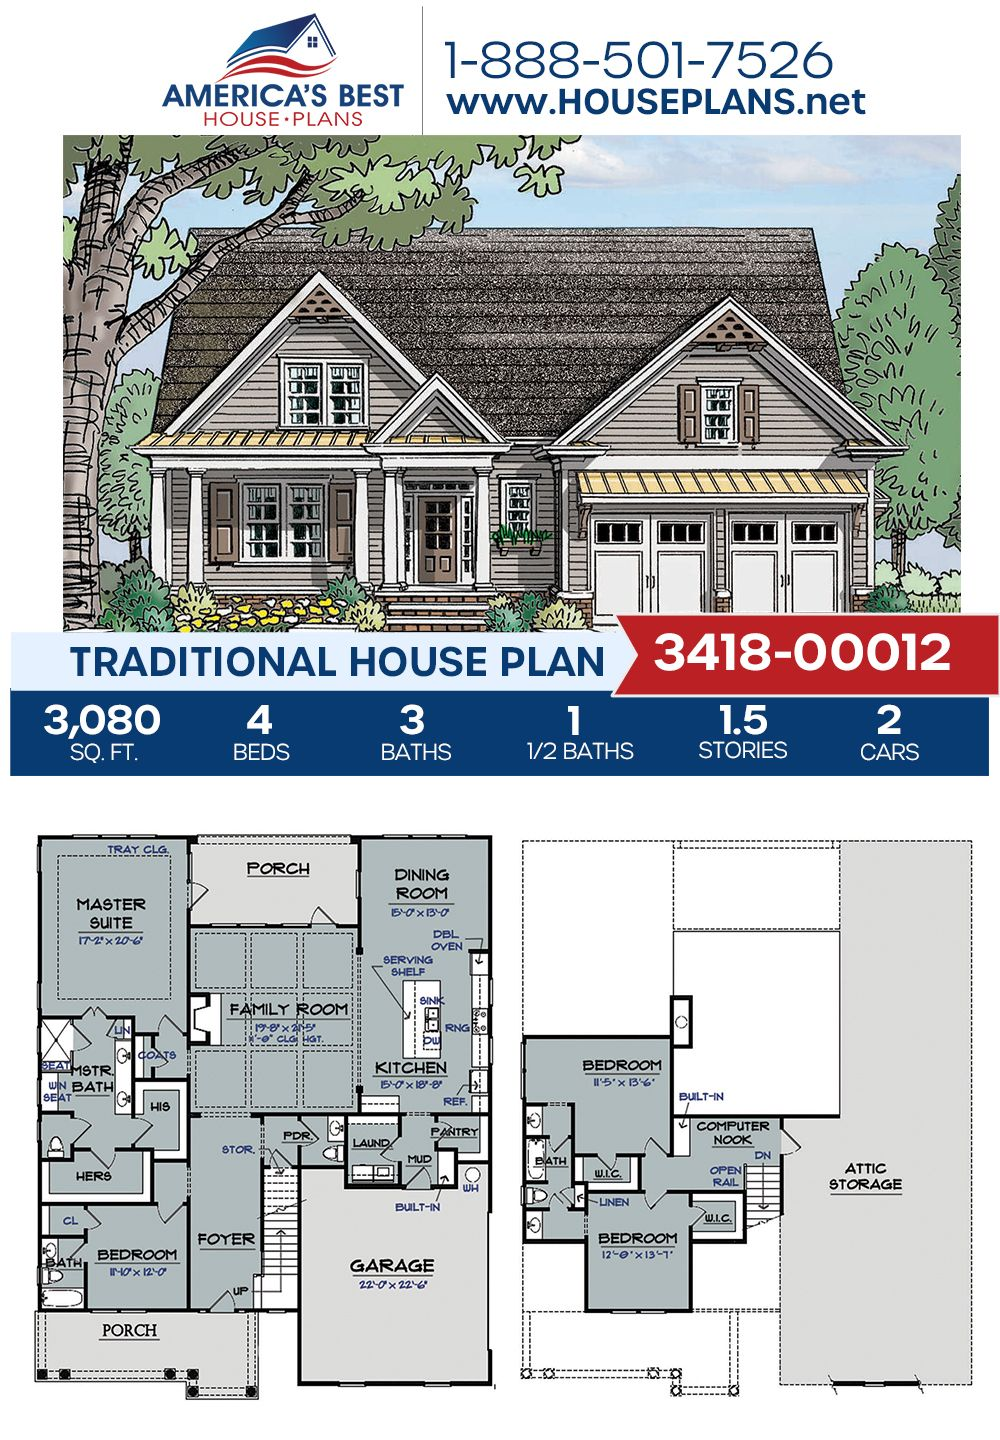 House Plan 3418 00012 Traditional Plan 3 080 Square Feet 4 Bedrooms 3 5 Bathrooms In 2020 House Plans Traditional House Plans Dream House Plans